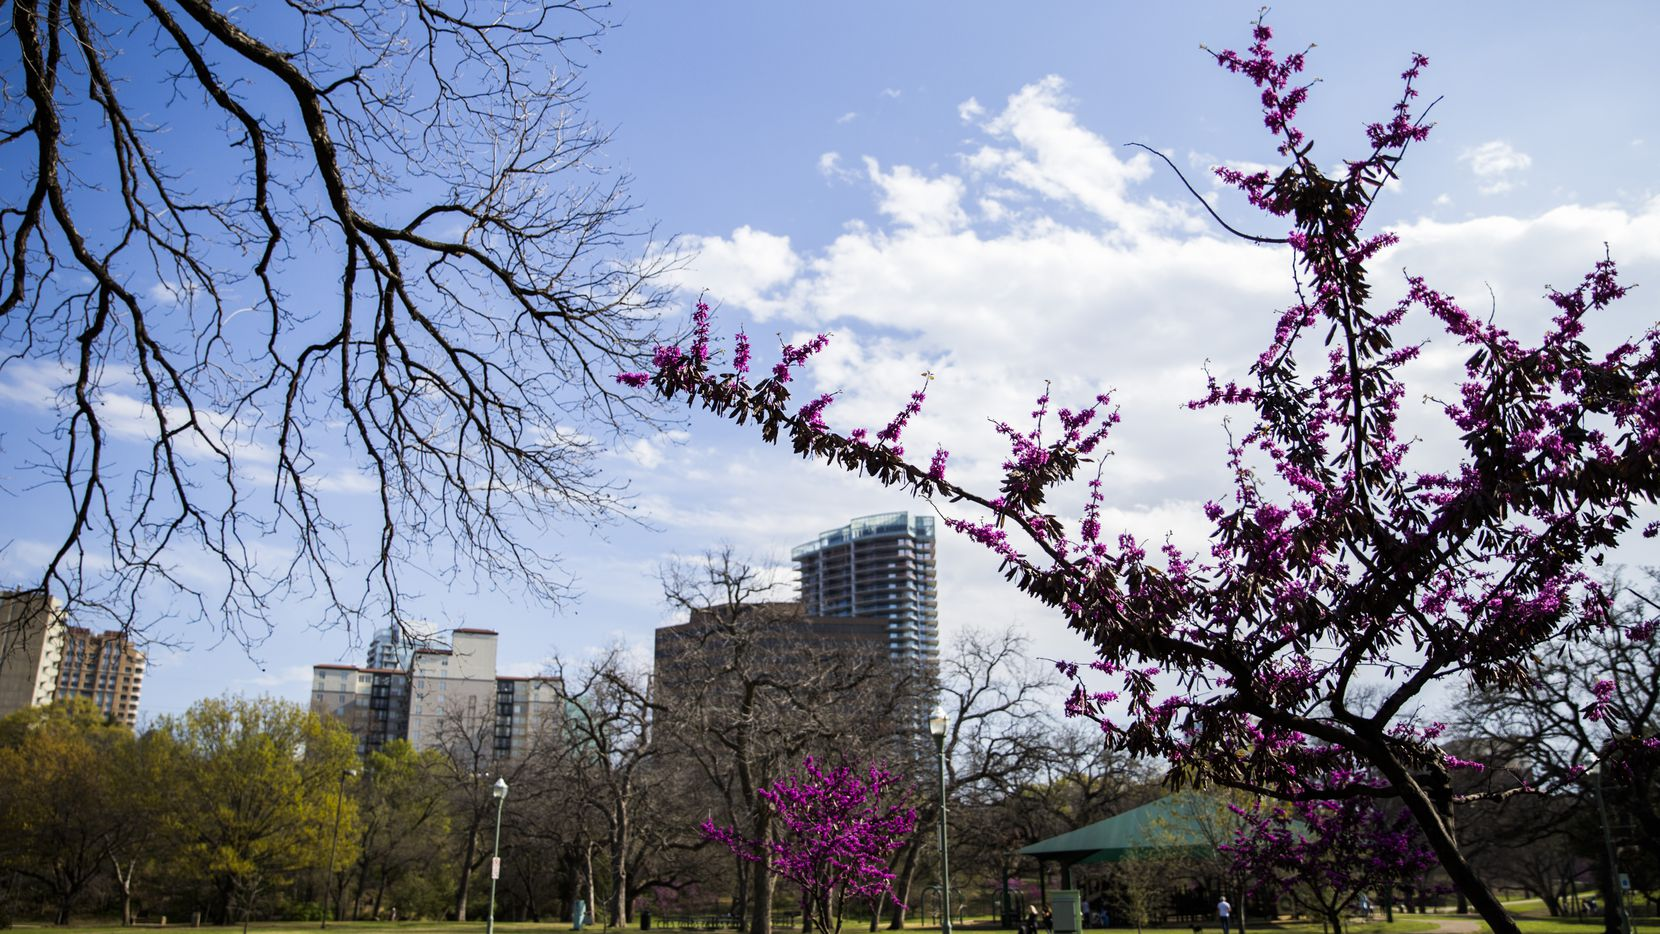 Redbud trees burst with sping color on Sunday, March 18, 2018 at Reverchon Park in Dallas. (Ashley Landis/The Dallas Morning News)